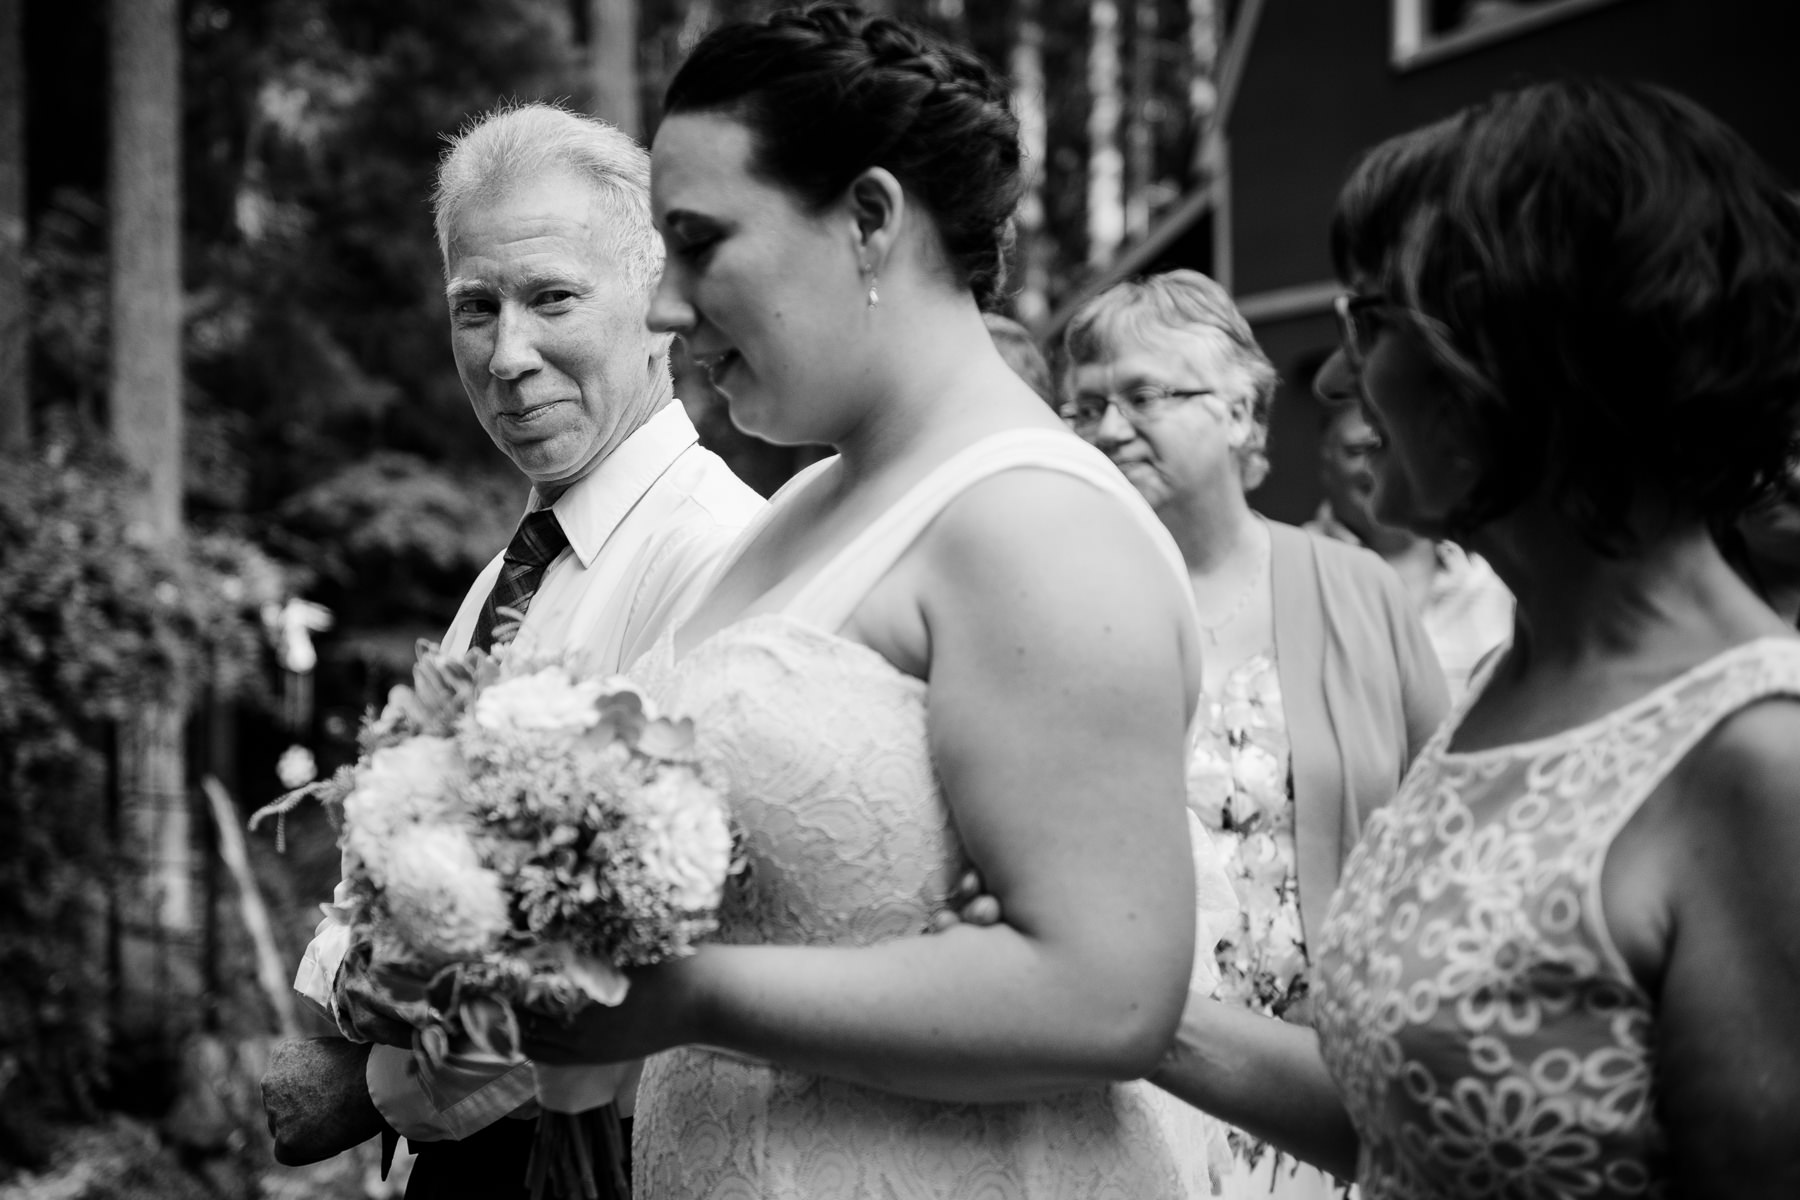 father of bride at wedding